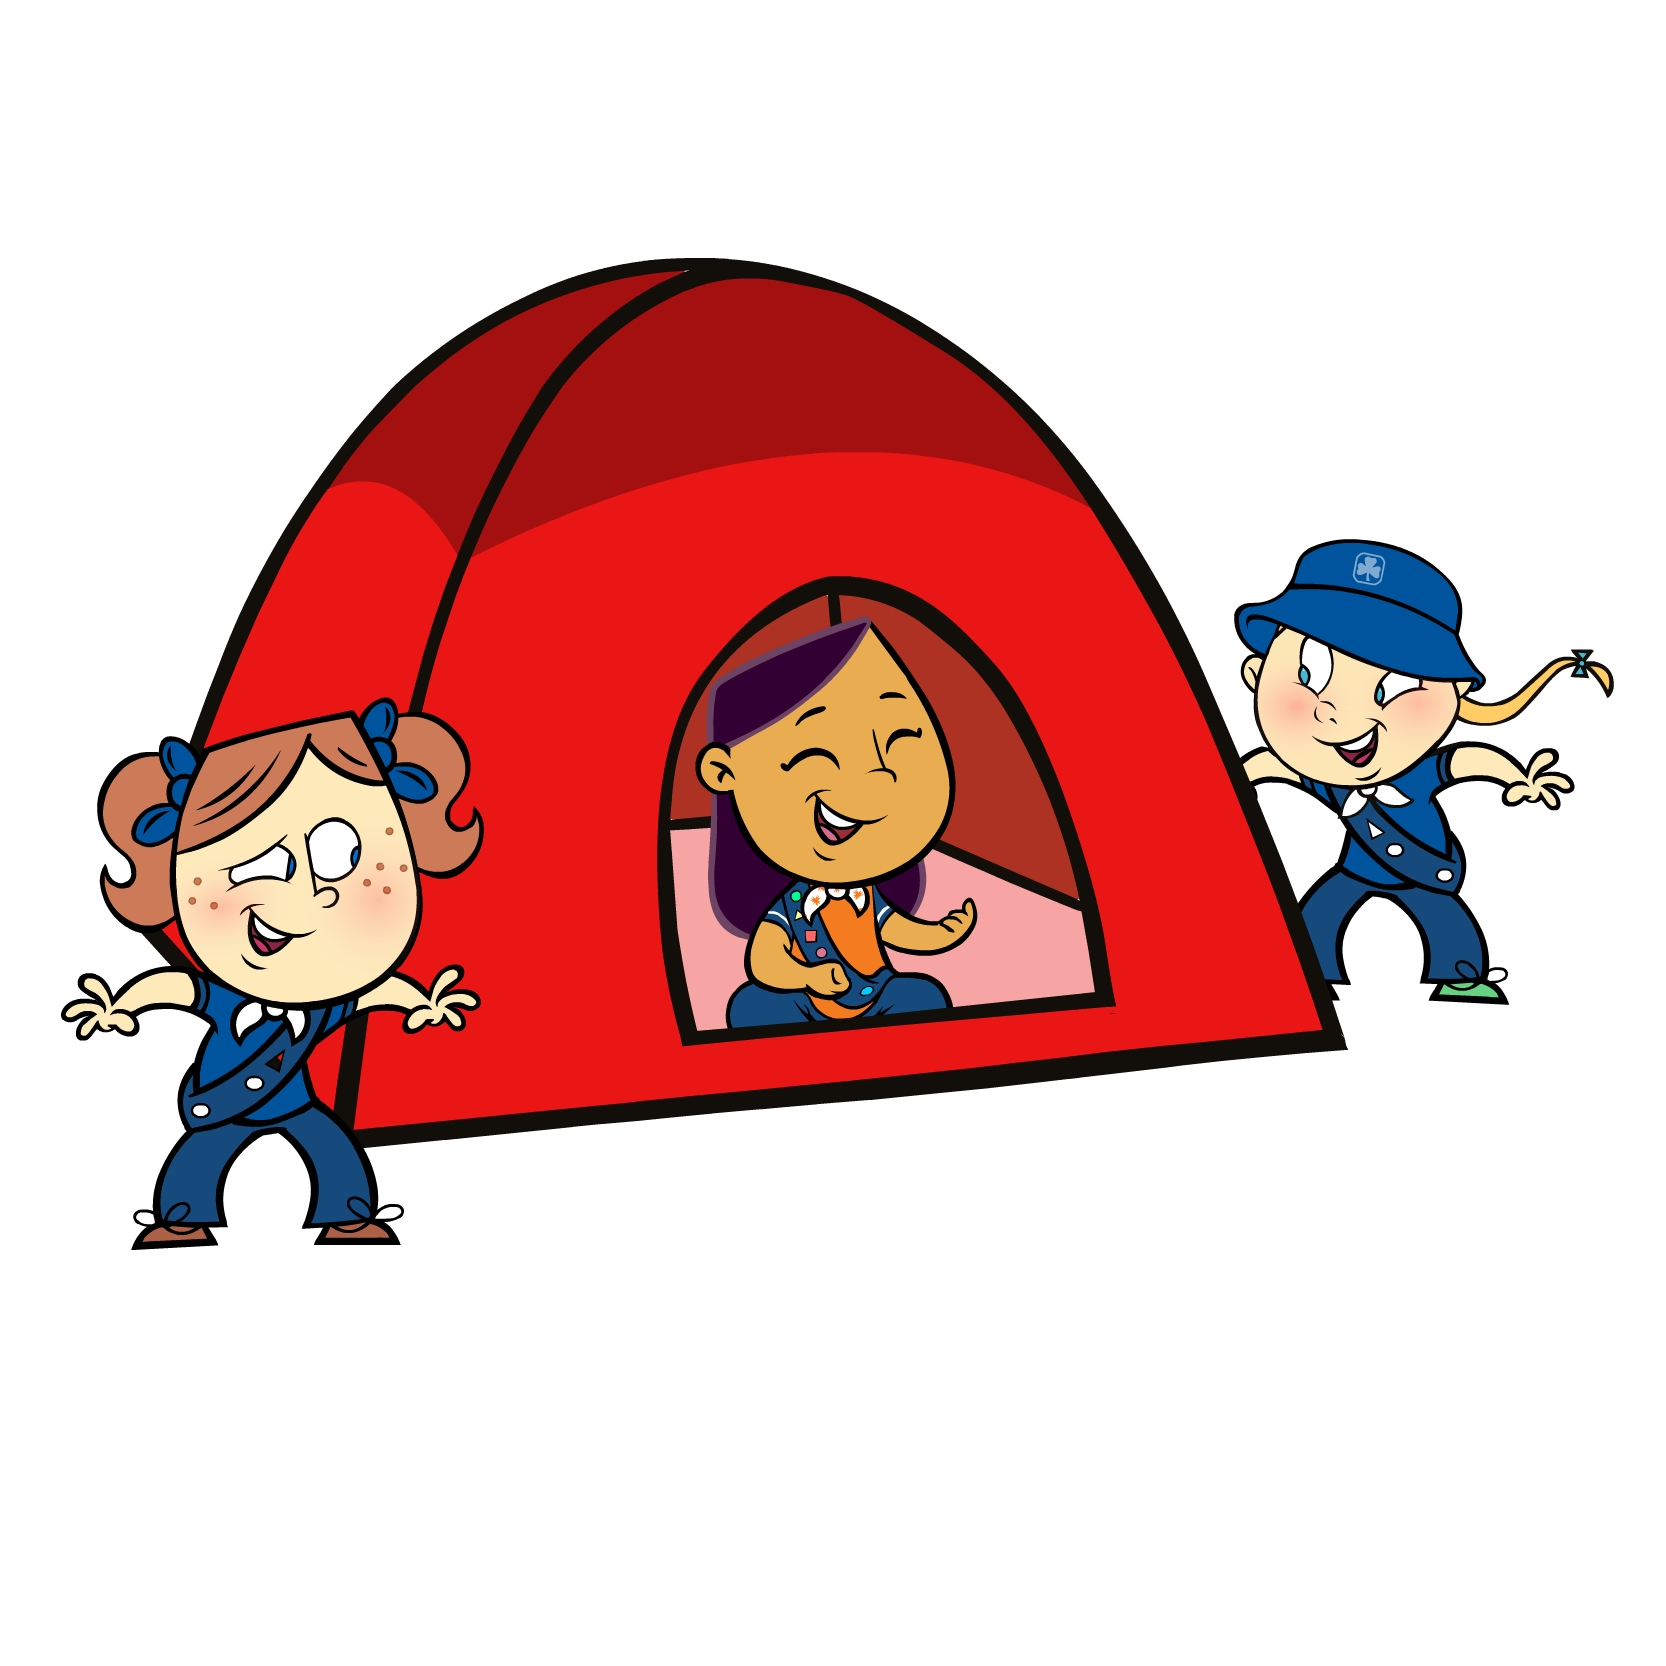 Sleepover Clip Art Free - Cliparts.co